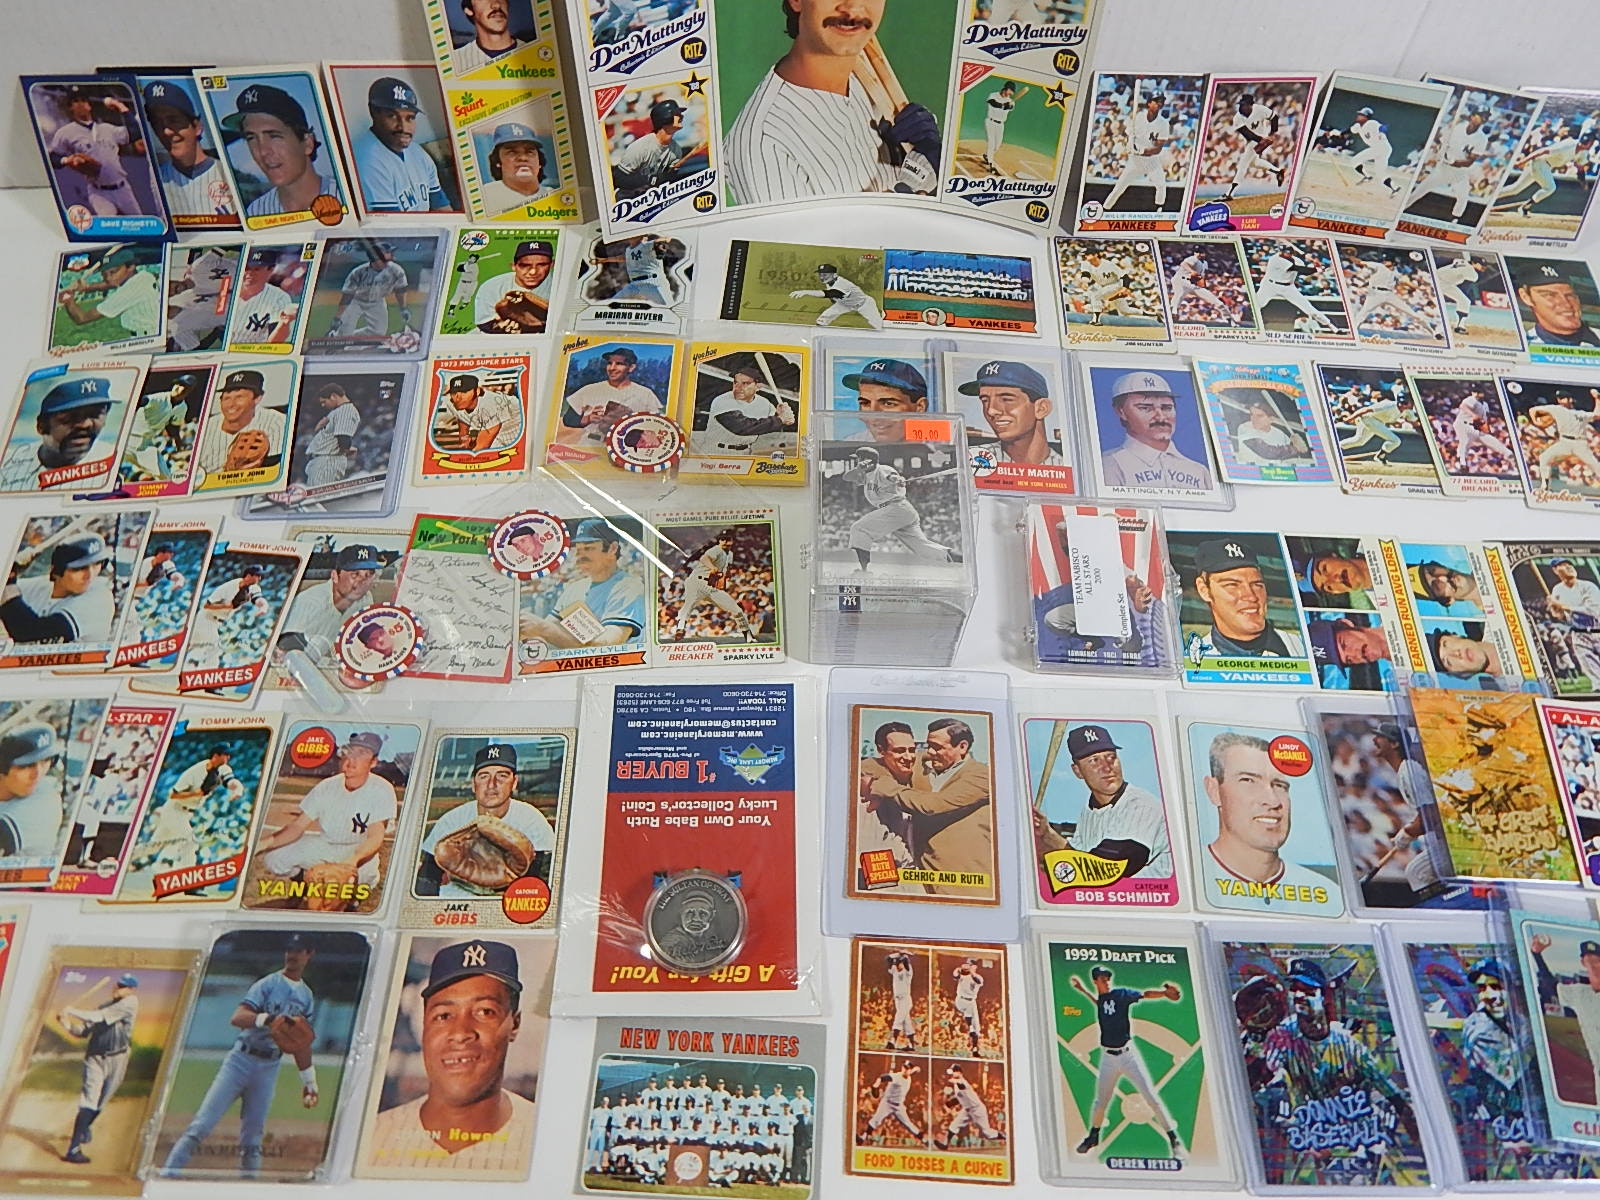 New York Yankees Card and Memorabilia Collection - Around 200 Card Count